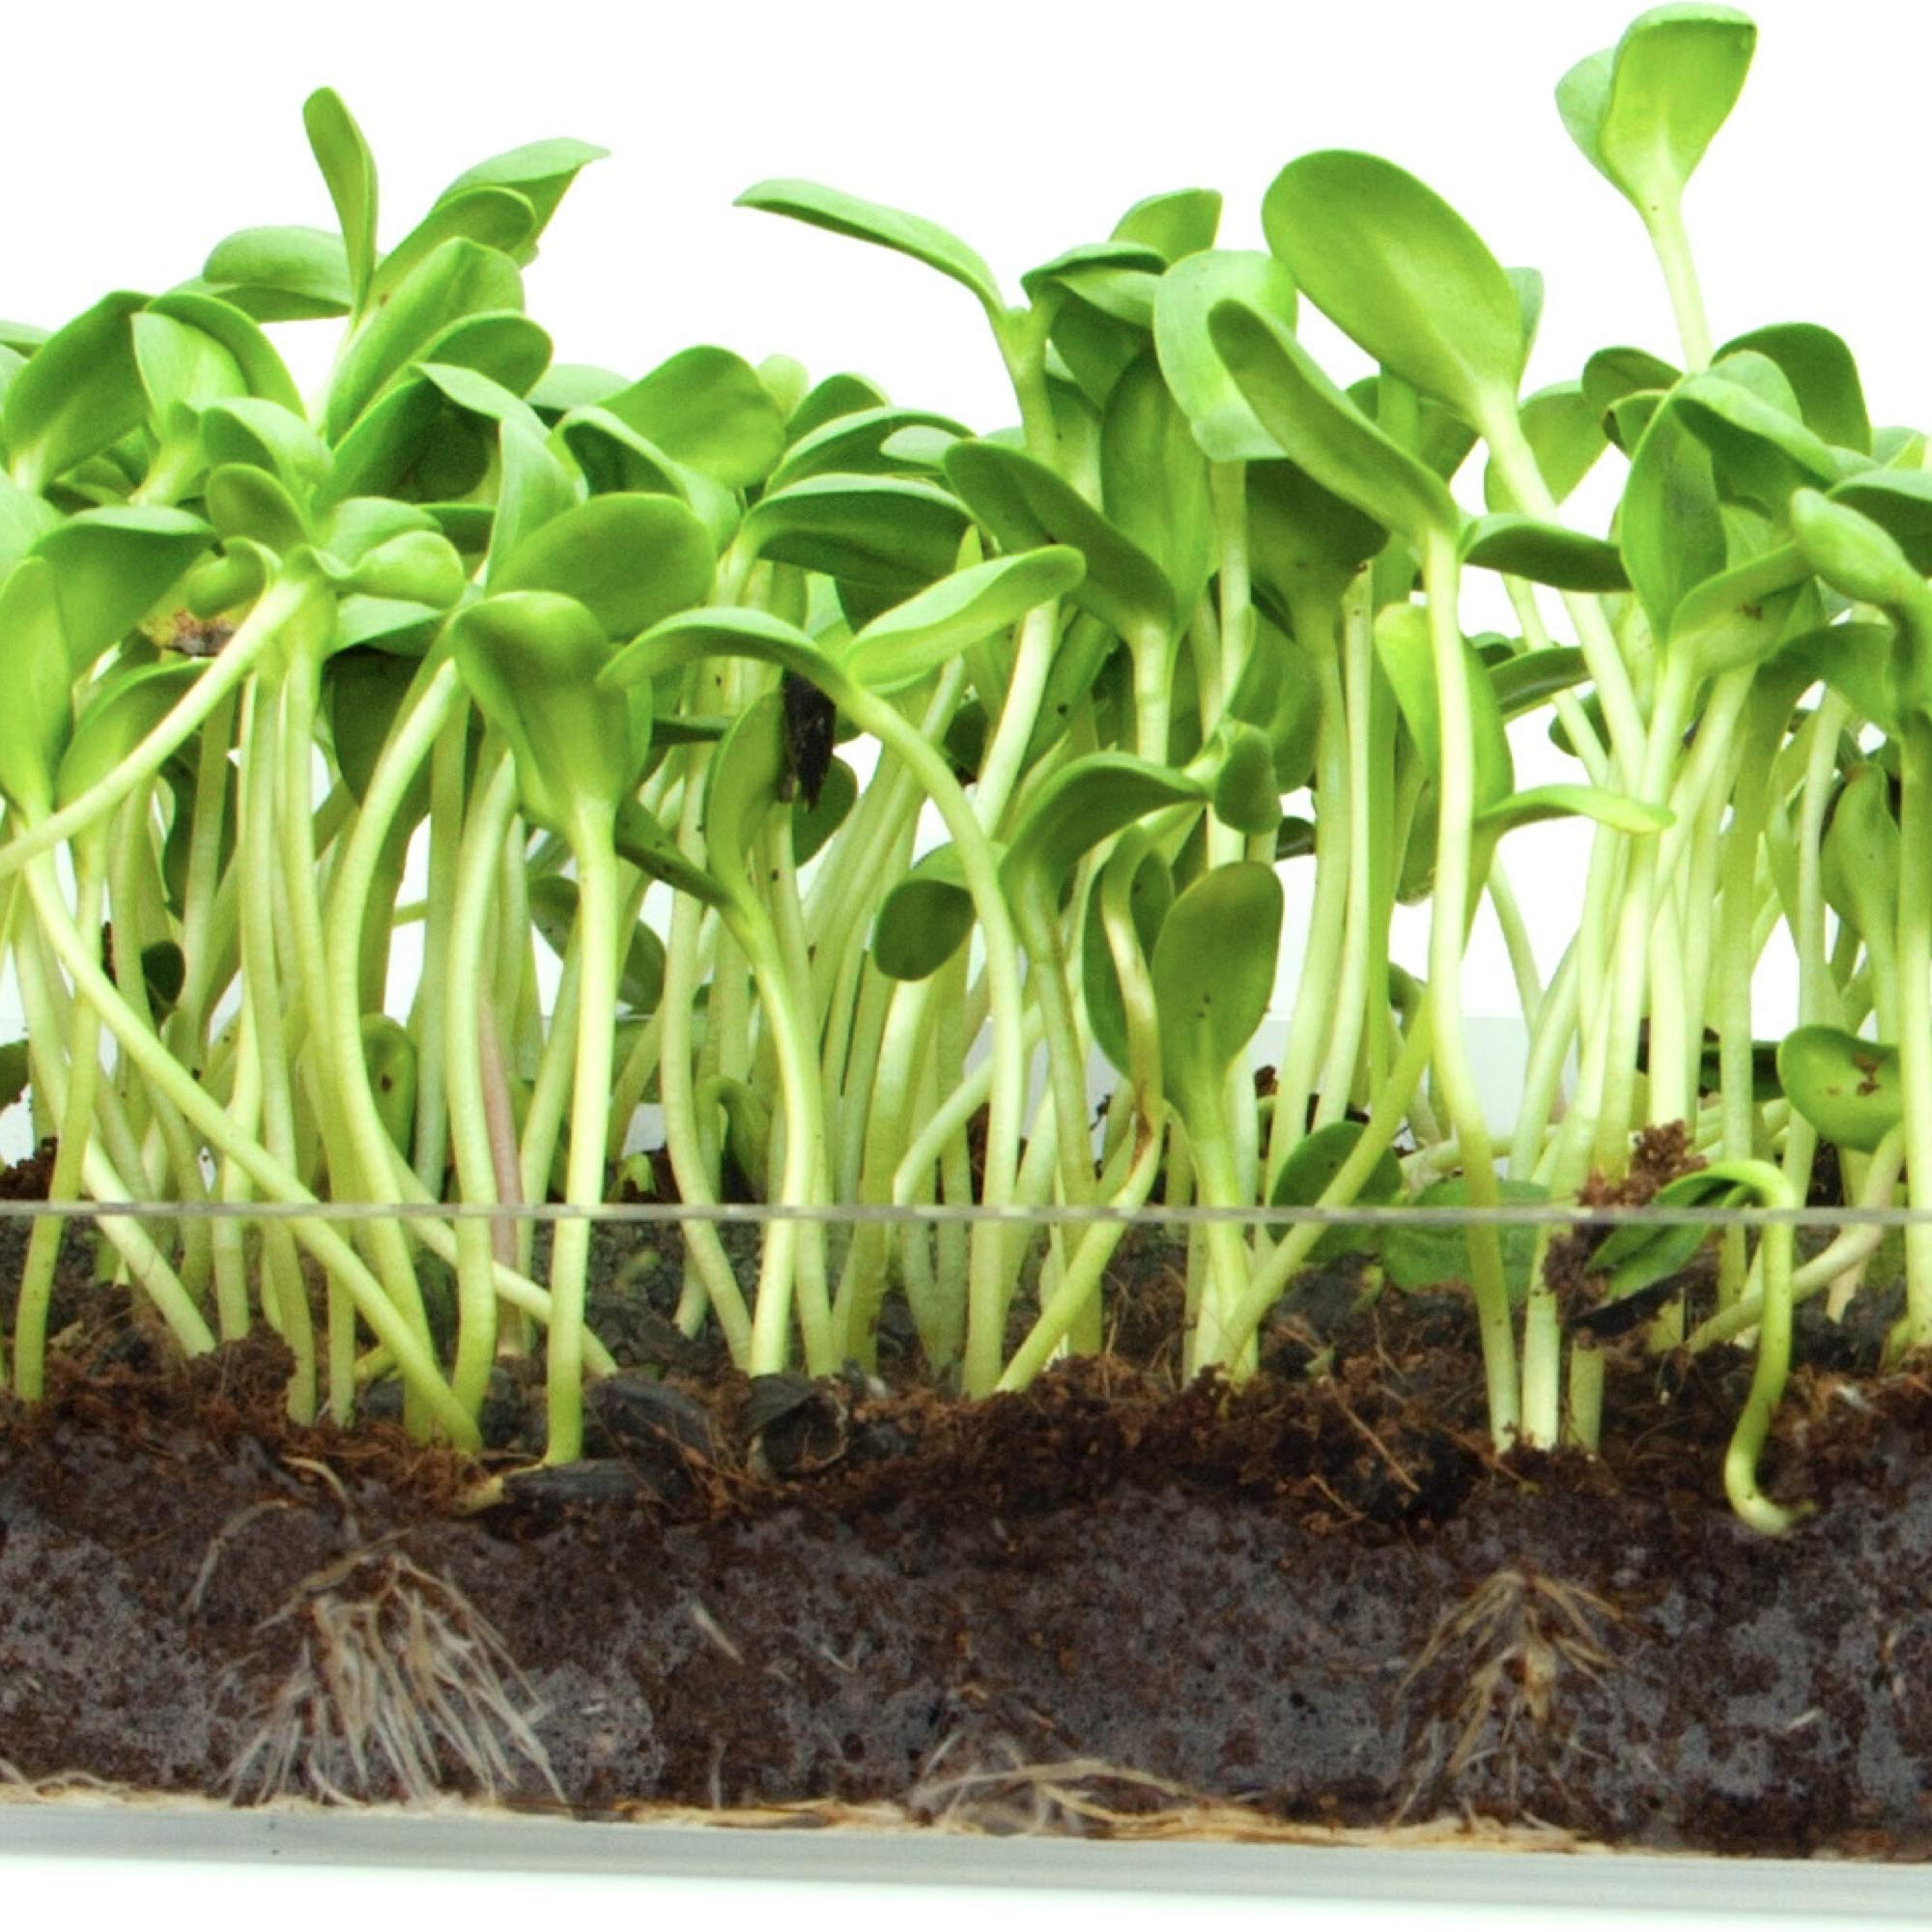 Microgreen Organic Sunflower 3 Pack Refill KIT - Pre-Measured Soil + Seed, USE with Window Garden Multi-Use 15'' x 6'' Planter Tray. (Tray NOT Included). Enough to Sprout 3 Crops of Superfood. by Window Garden